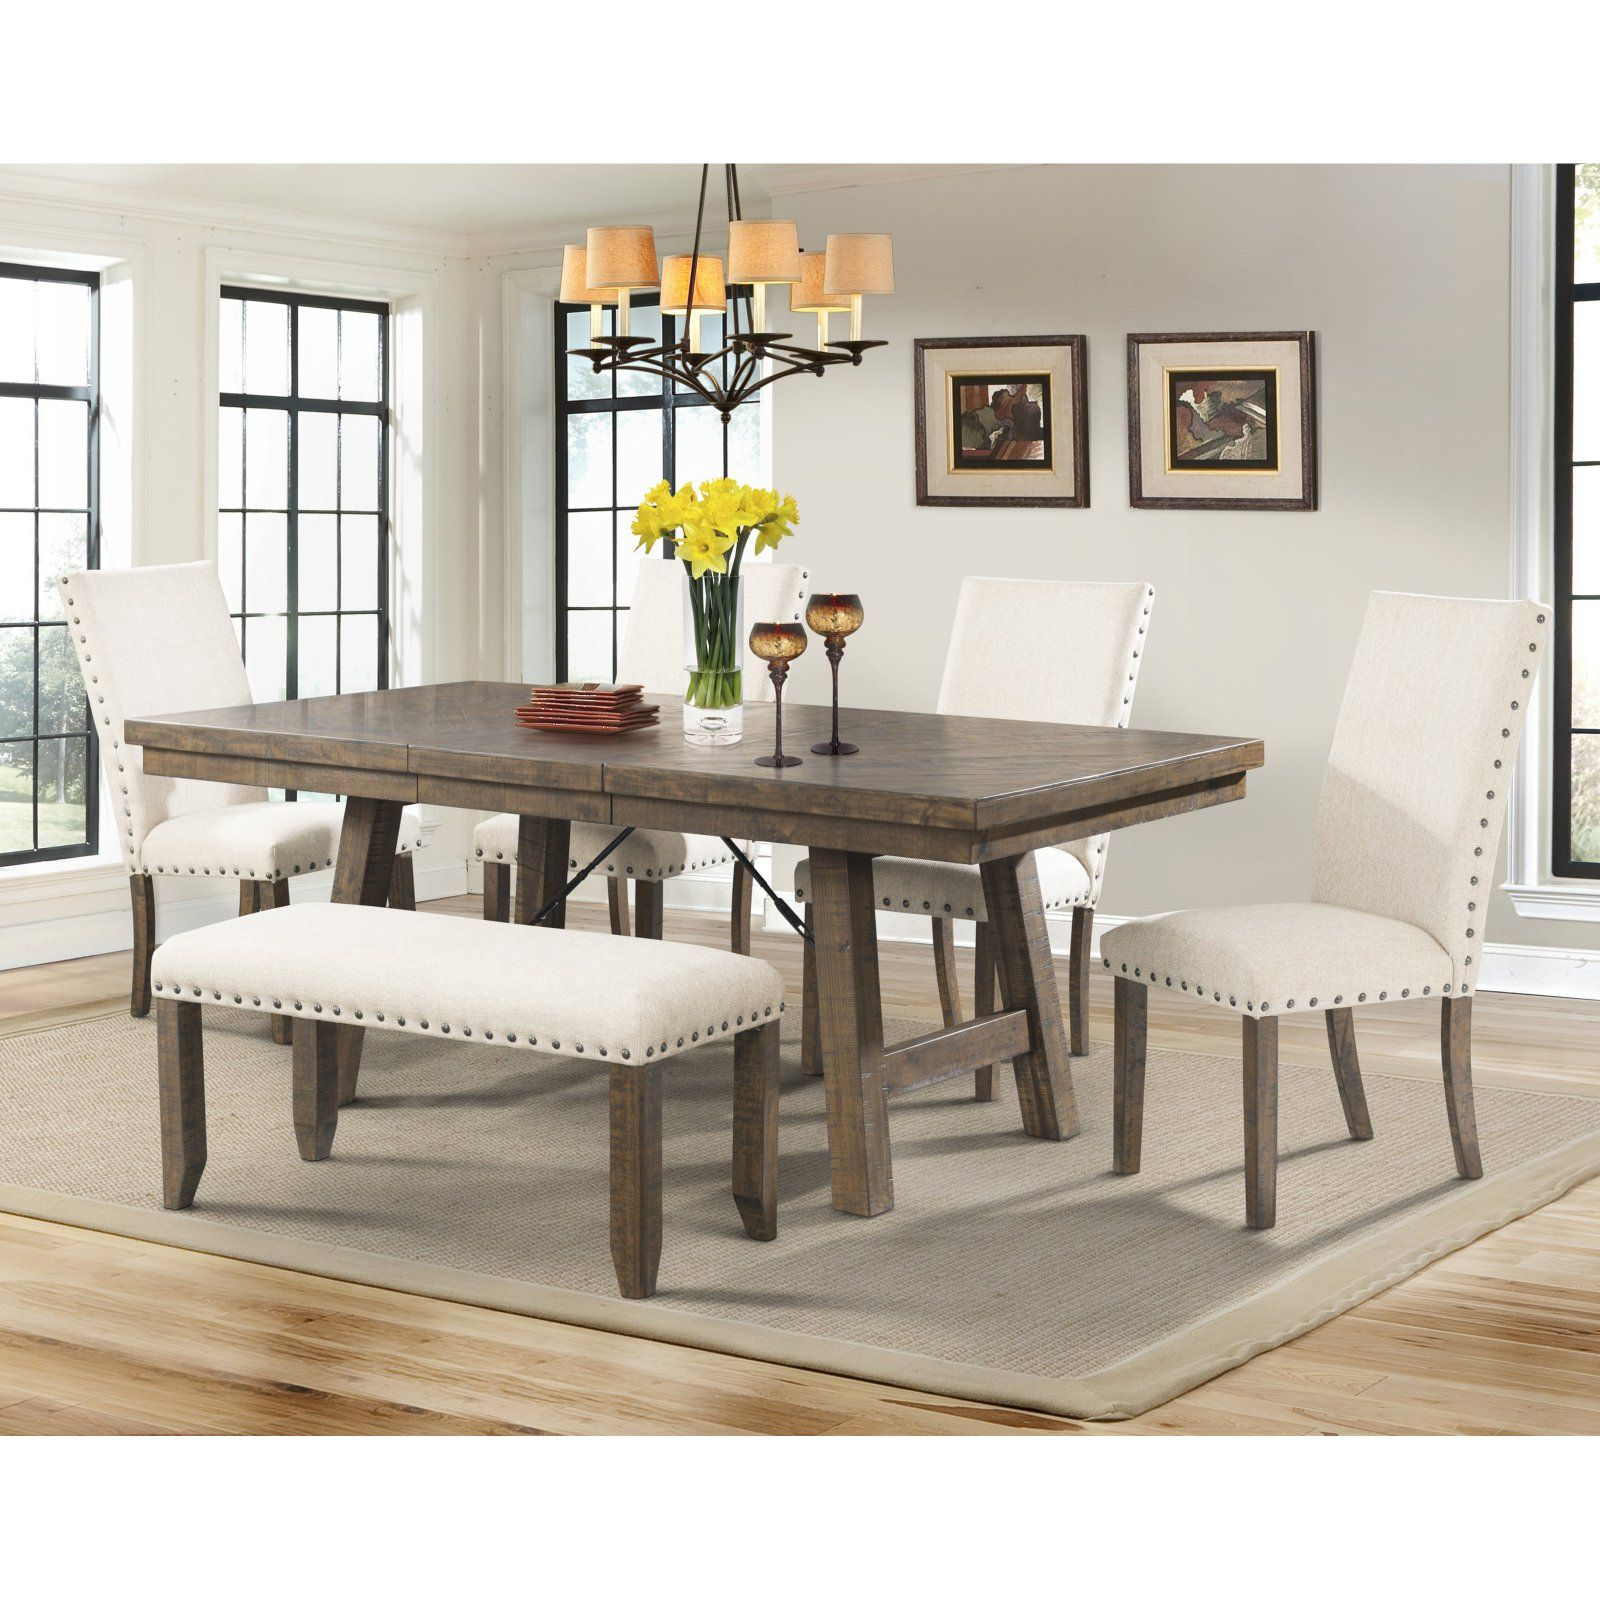 Picket House Dex 6 Piece Dining Table Set Walmart Com Farmhouse Dining Room Table Dining Table Setting Modern Farmhouse Dining Room